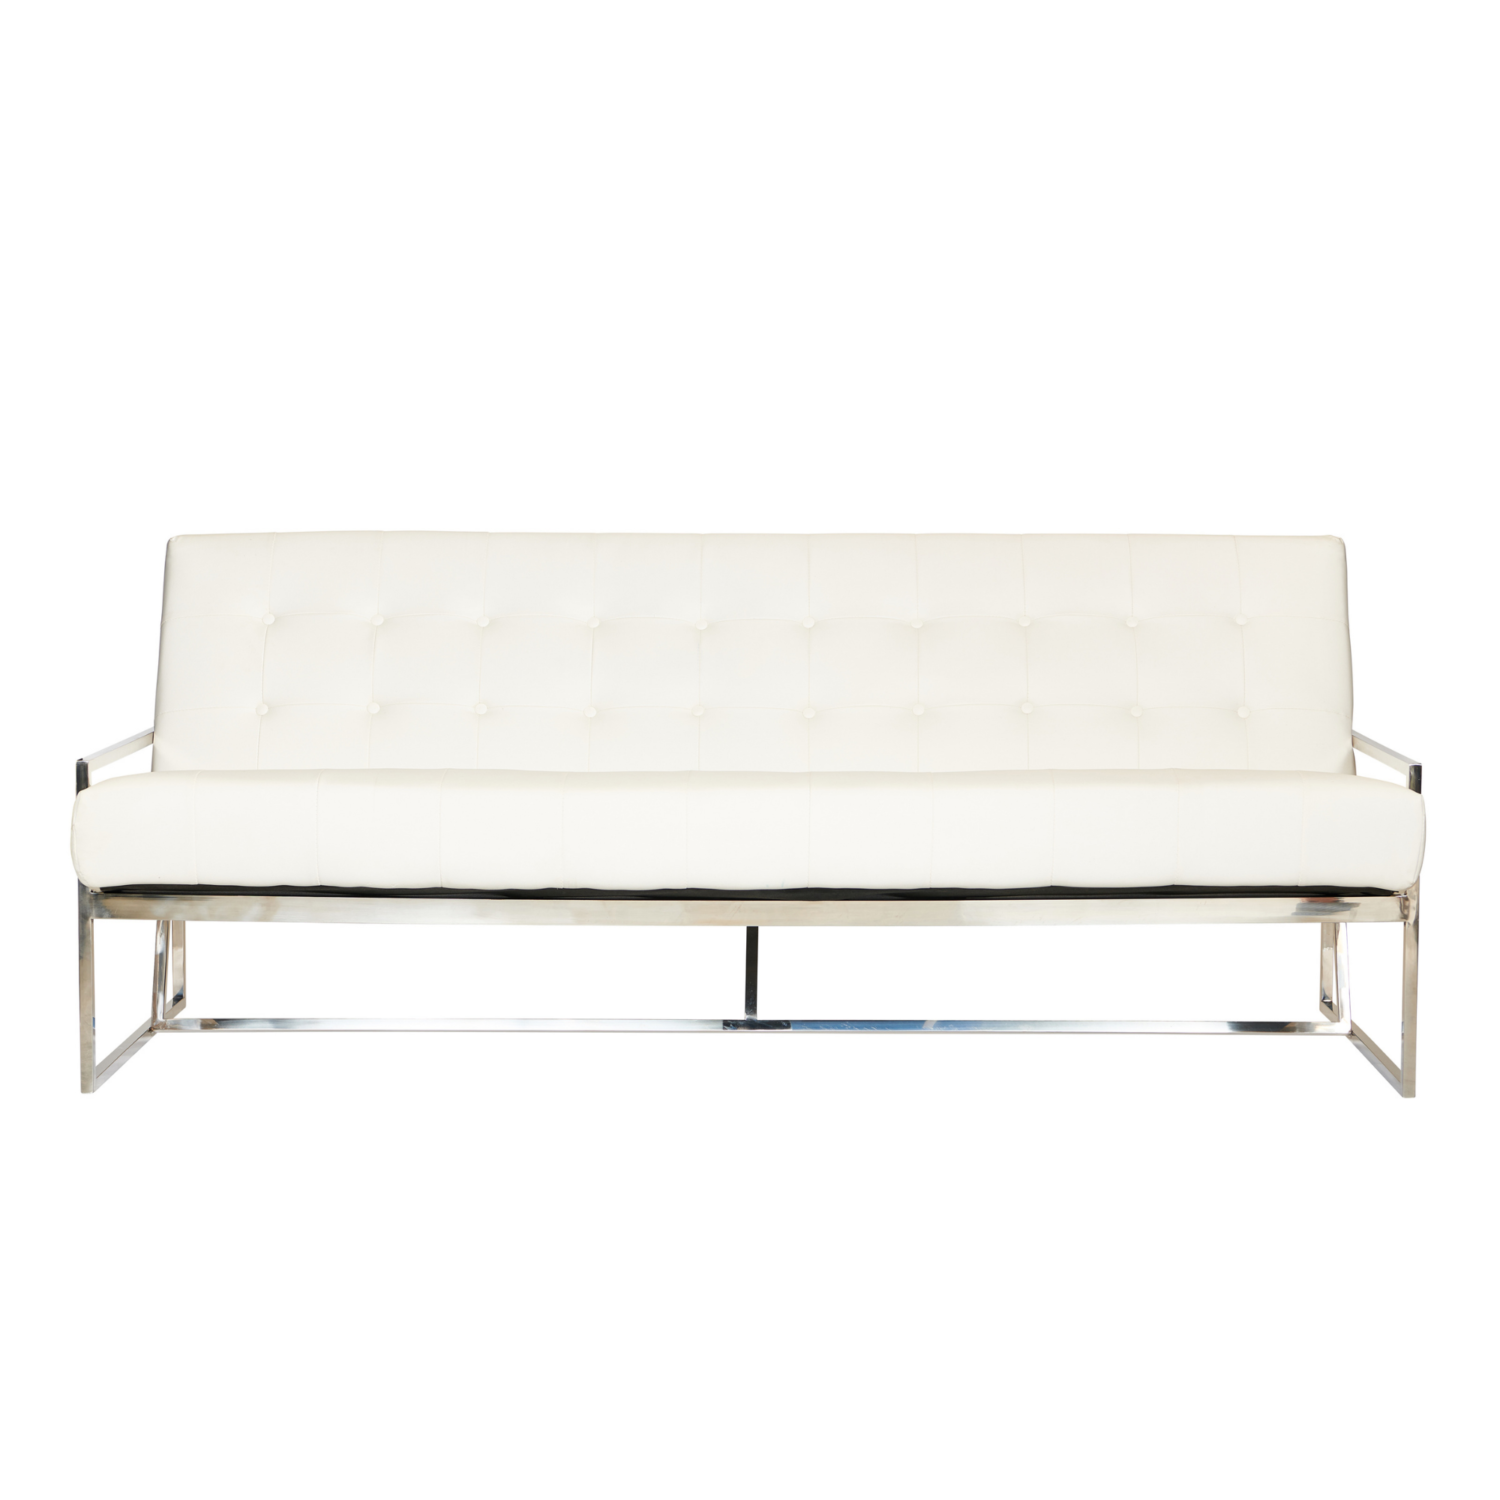 Starlet Three Seater Sofa - White / Silver Frame - Event Artillery